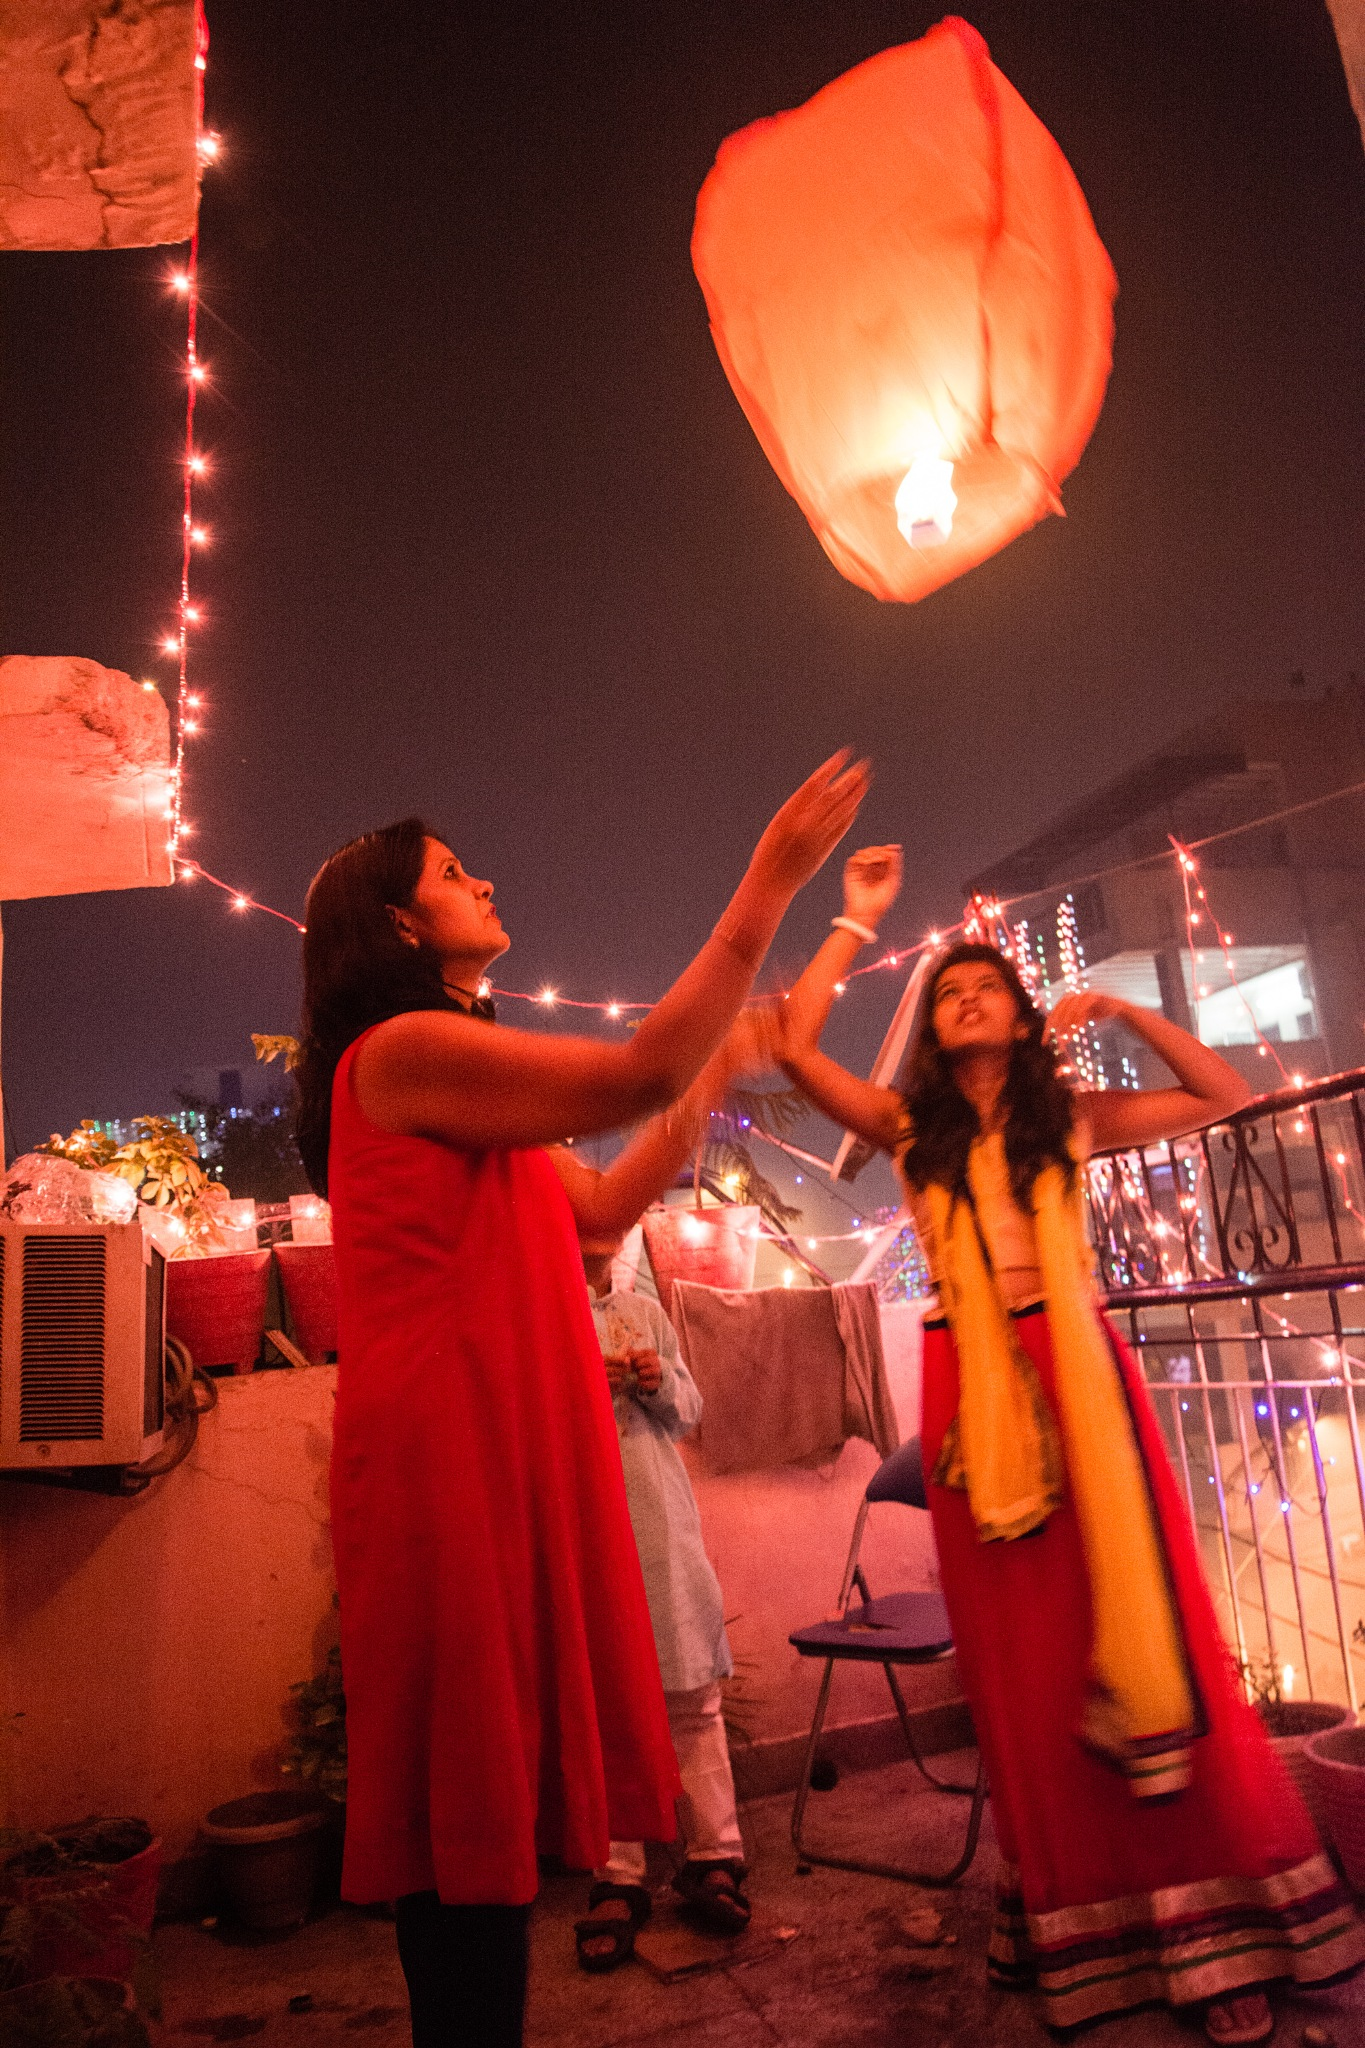 happy diwali by photography by a rookie